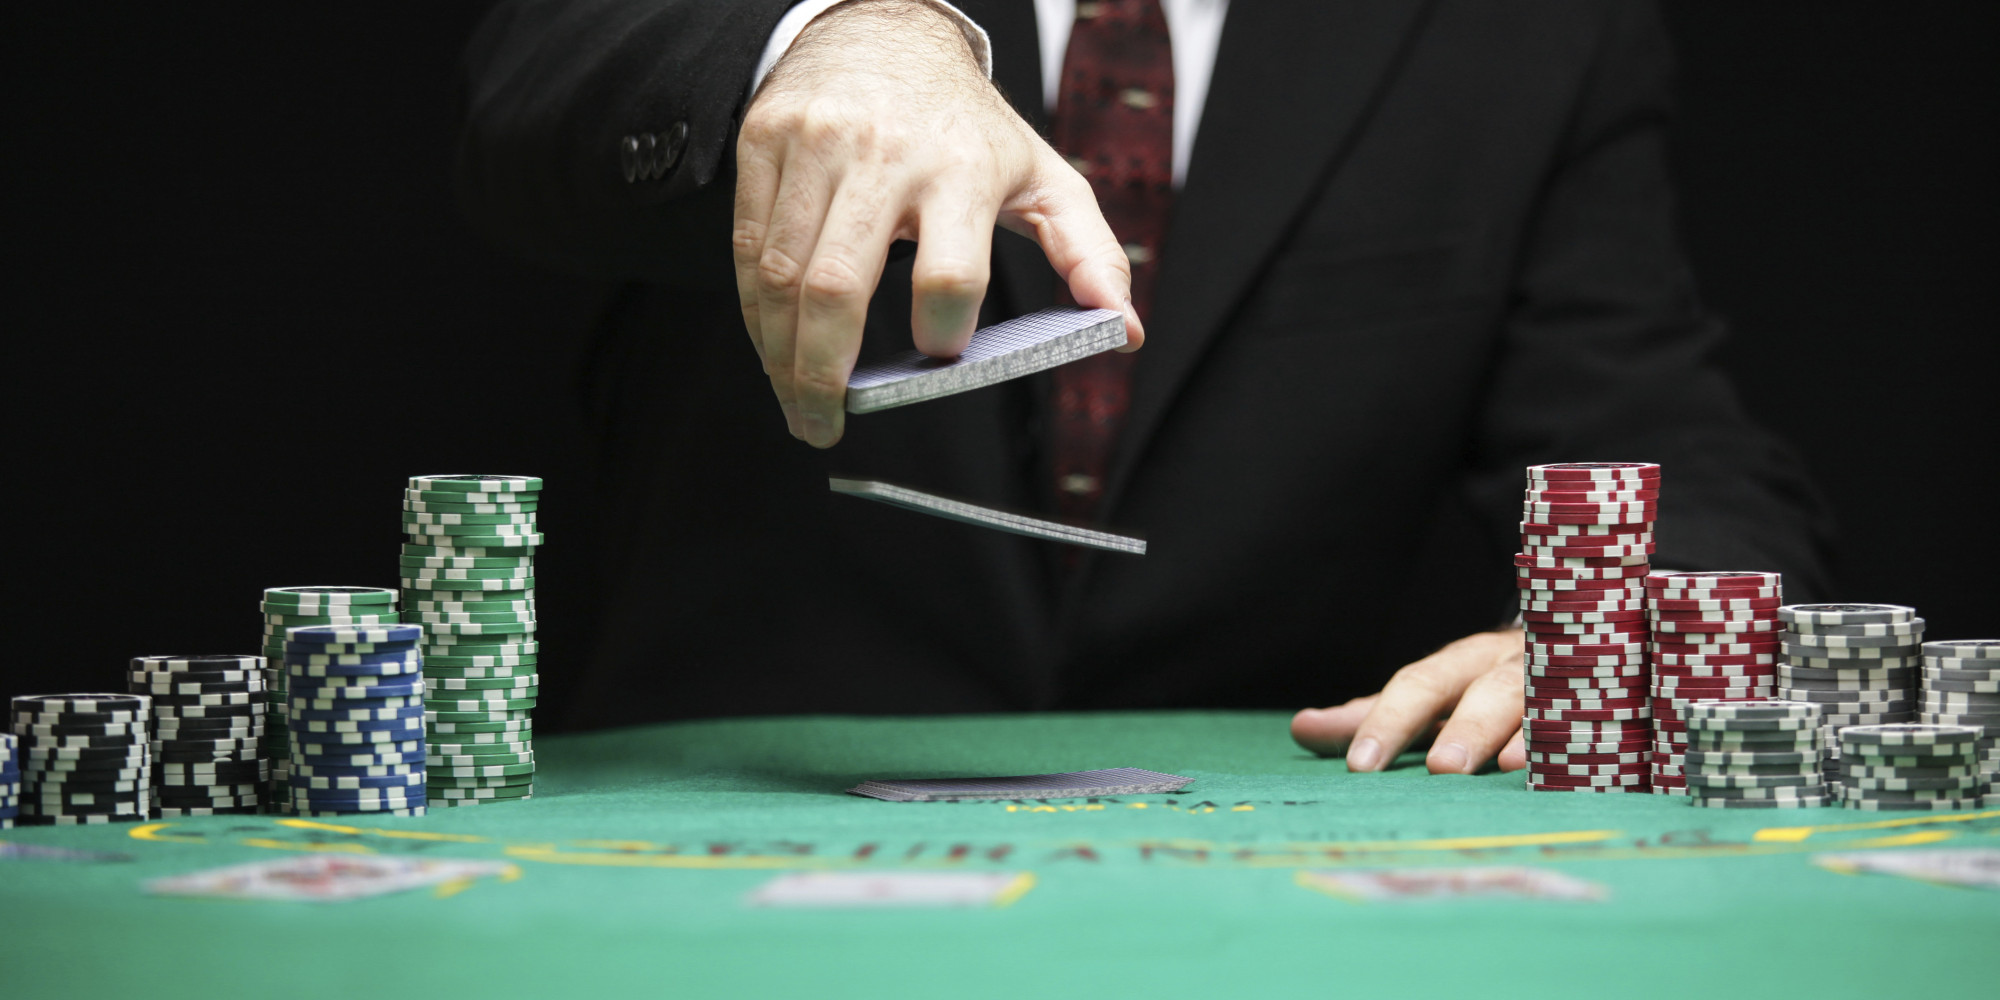 Jamie Lewis :How Does Anyone Decide Where to Play Poker These Days?